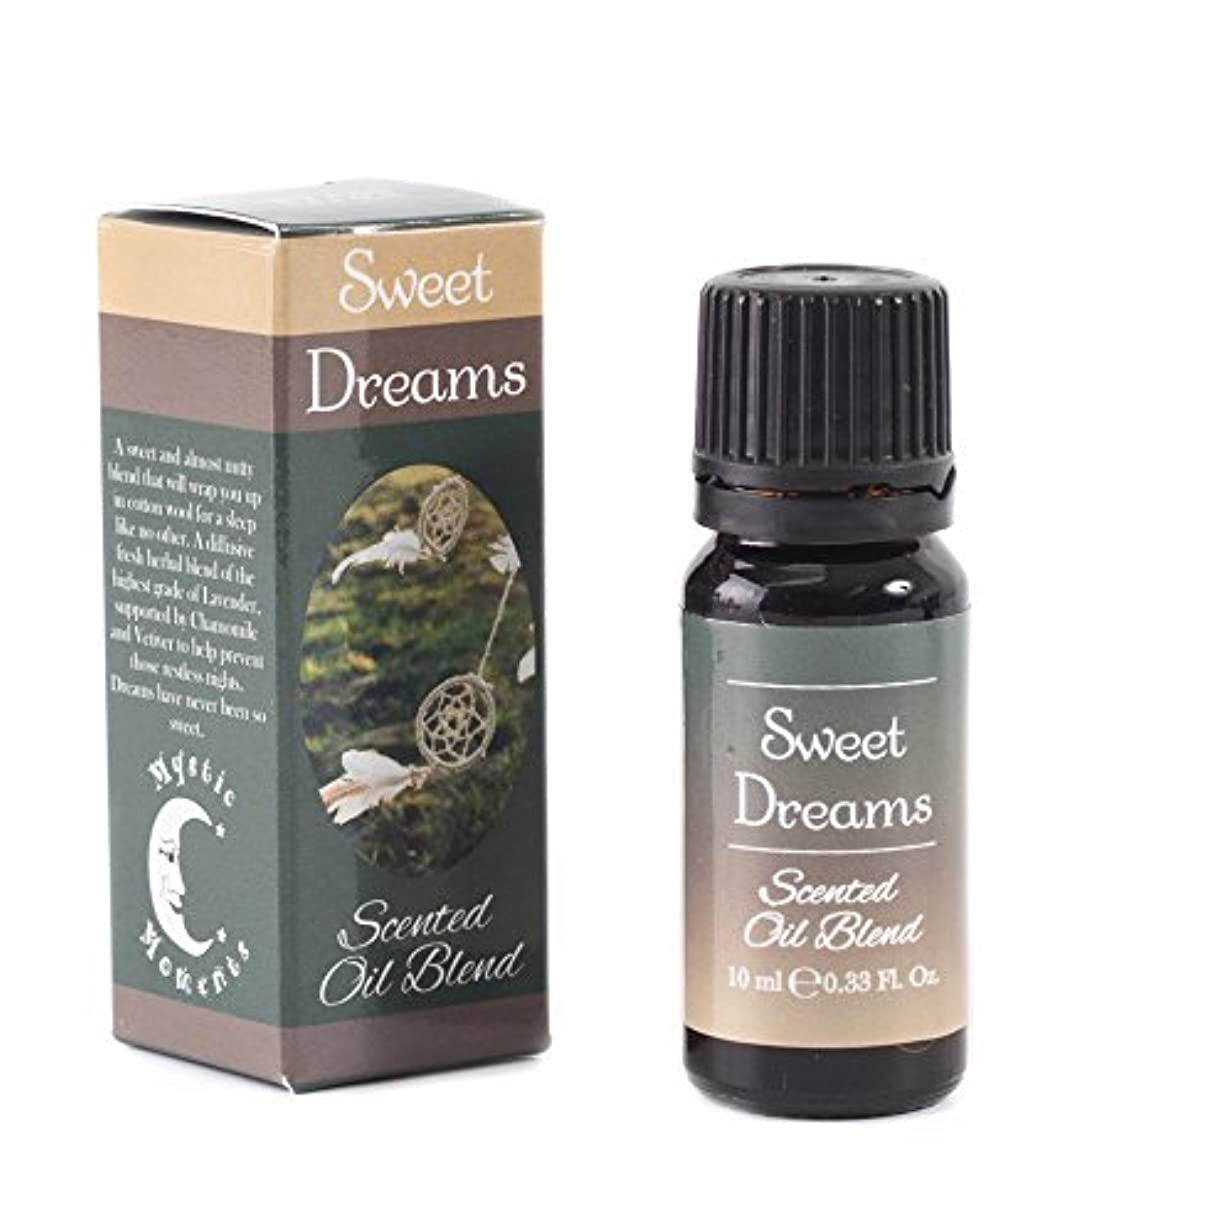 疑問を超えてキャンパス衝動Mystic Moments | Sweet Dreams - Scented Oil Blend - 10ml